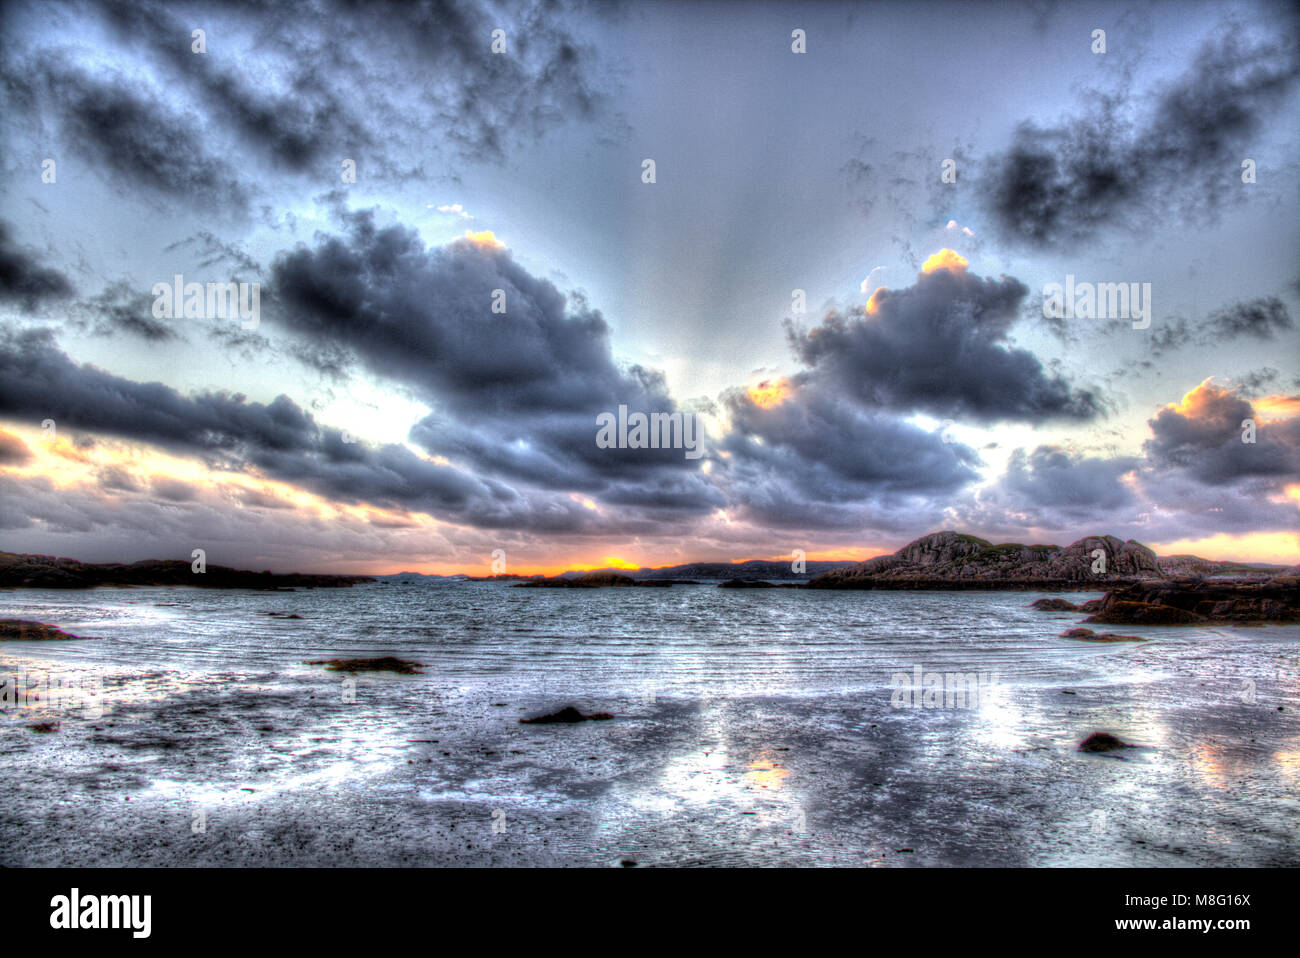 Isle of Mull, Scotland. Artistic sunset view from Fidden Beach on the west coast of Mull, with the Isle of Iona - Stock Image